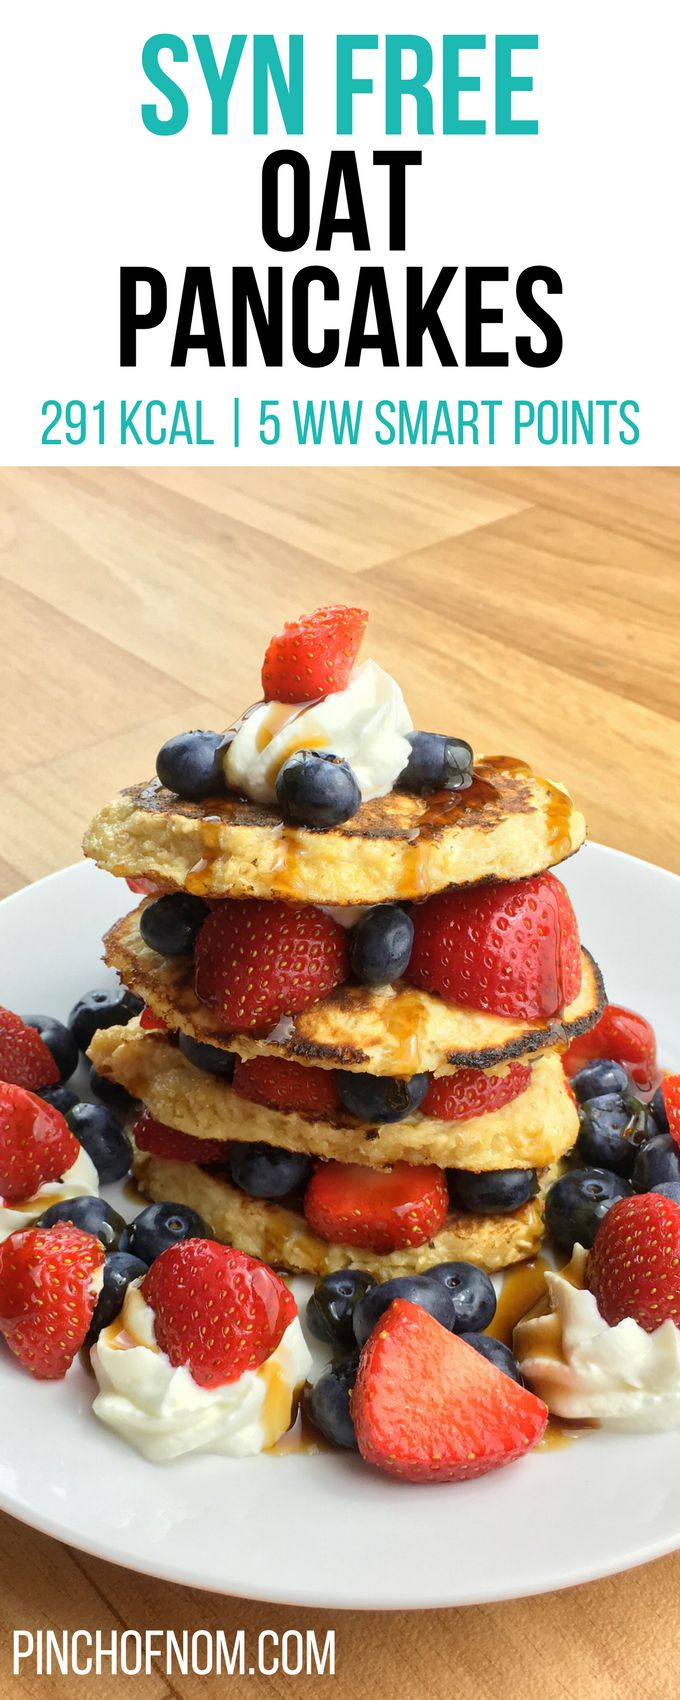 Syn Free Oat Pancakes | Pinch Of Nom Slimming World Recipes 291 kcal | Syn Free | 5 Weight Watchers Smart Points